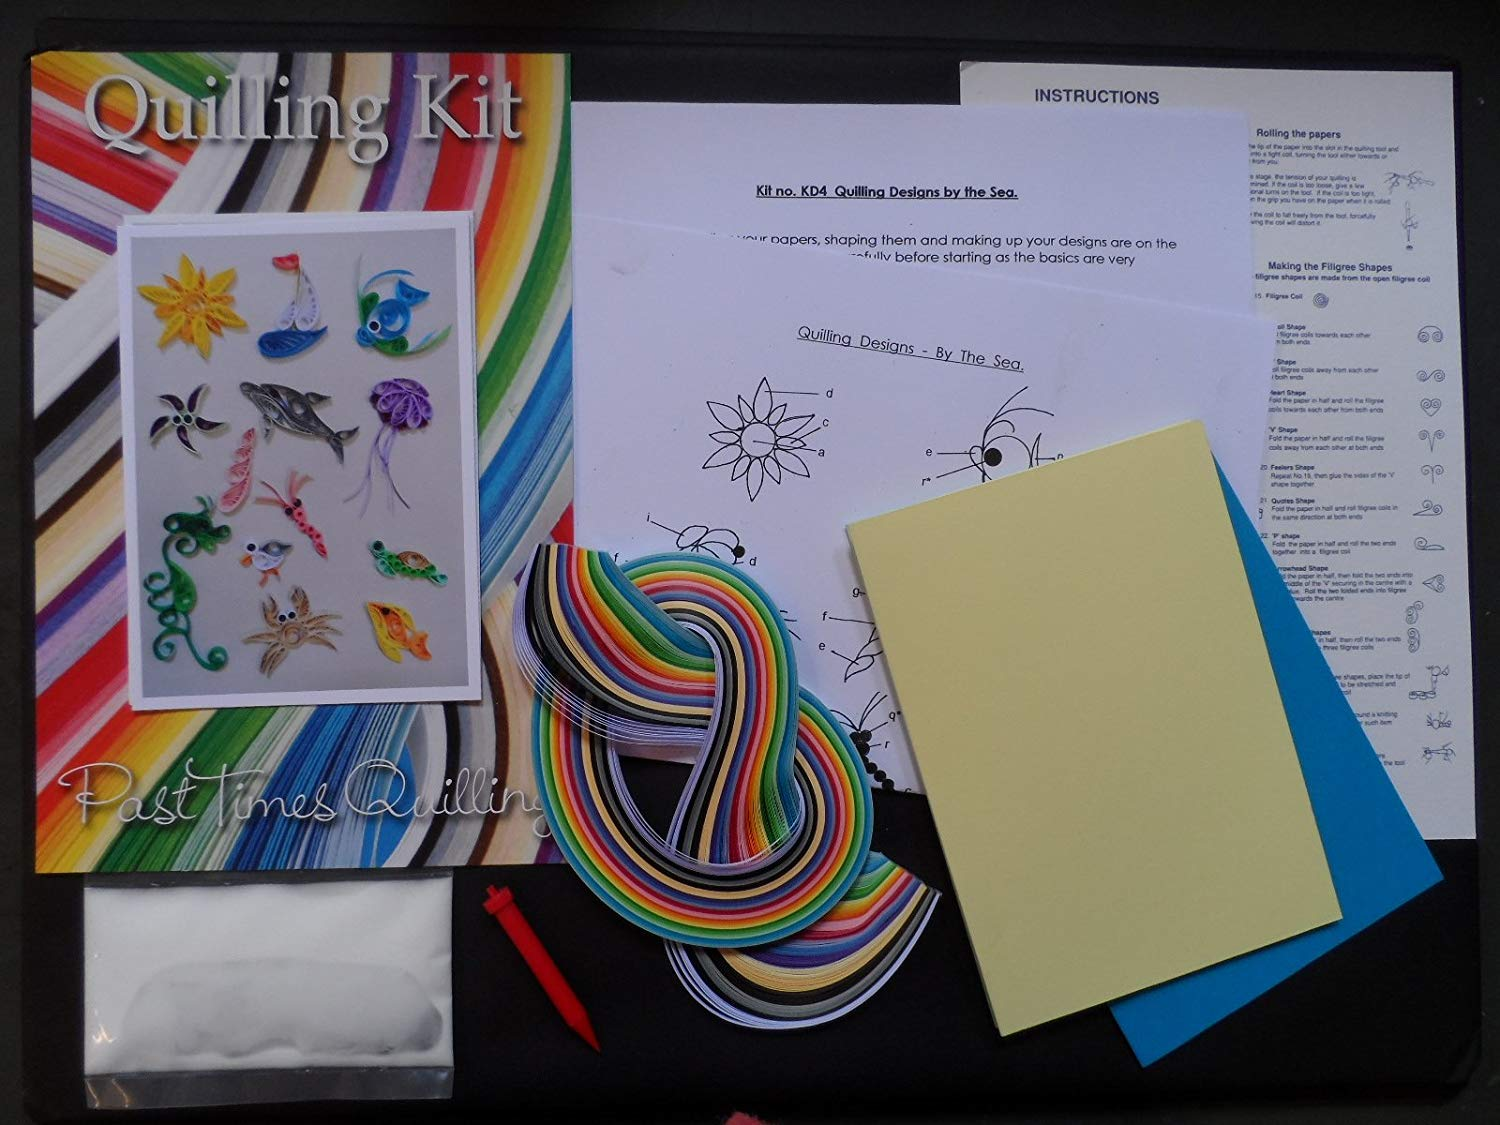 Quilling Kit - Designs by the Sea